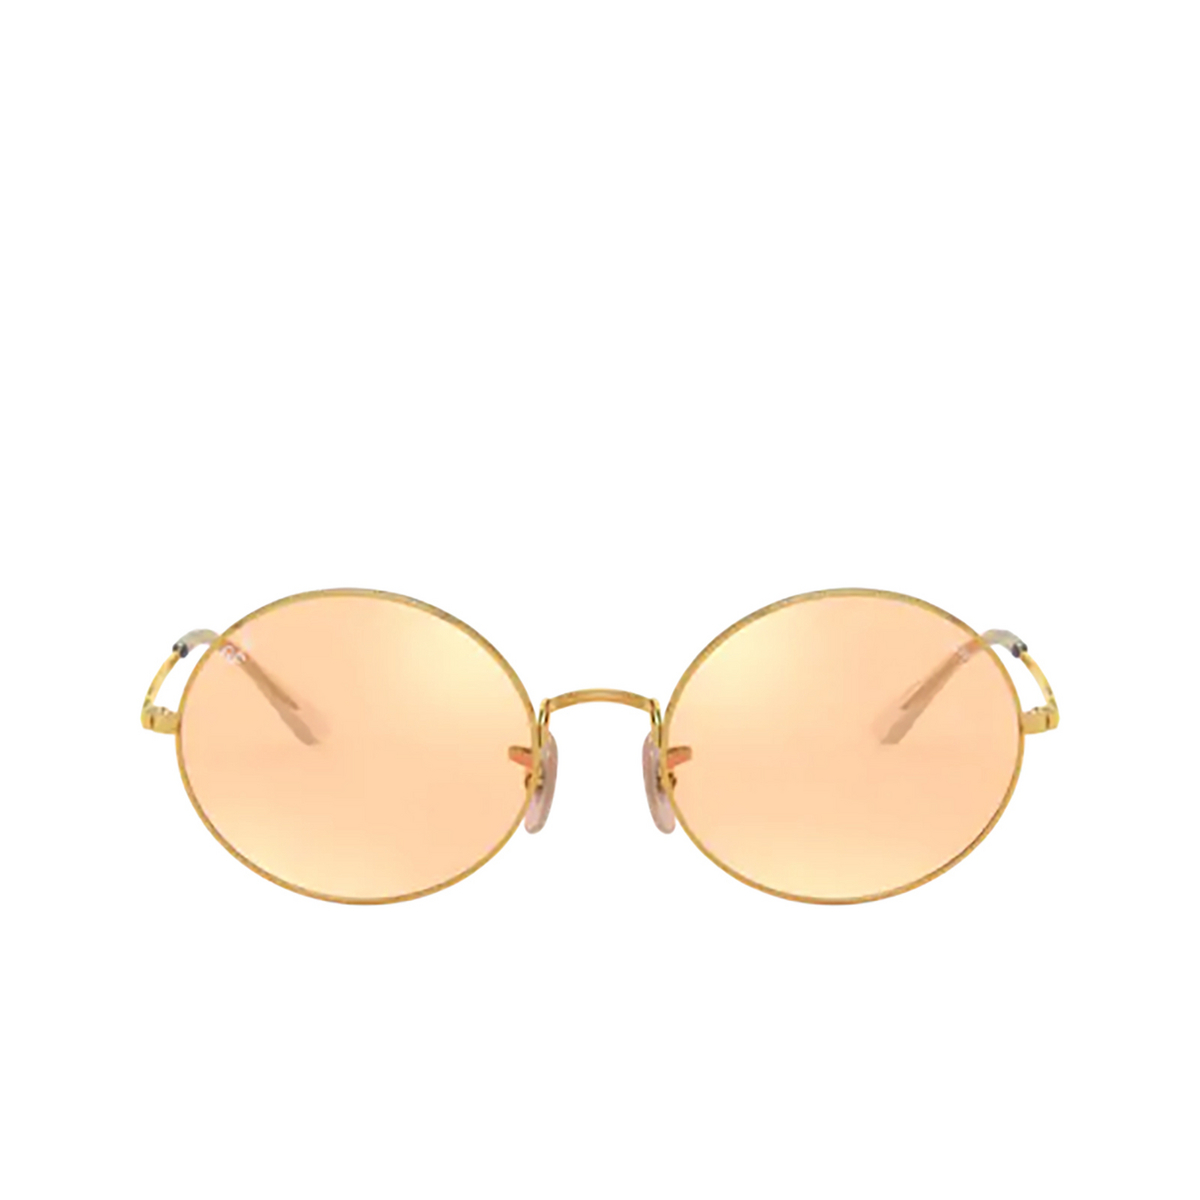 Ray-Ban® Oval Sunglasses: Oval RB1970 color Arista 001/B4 - front view.